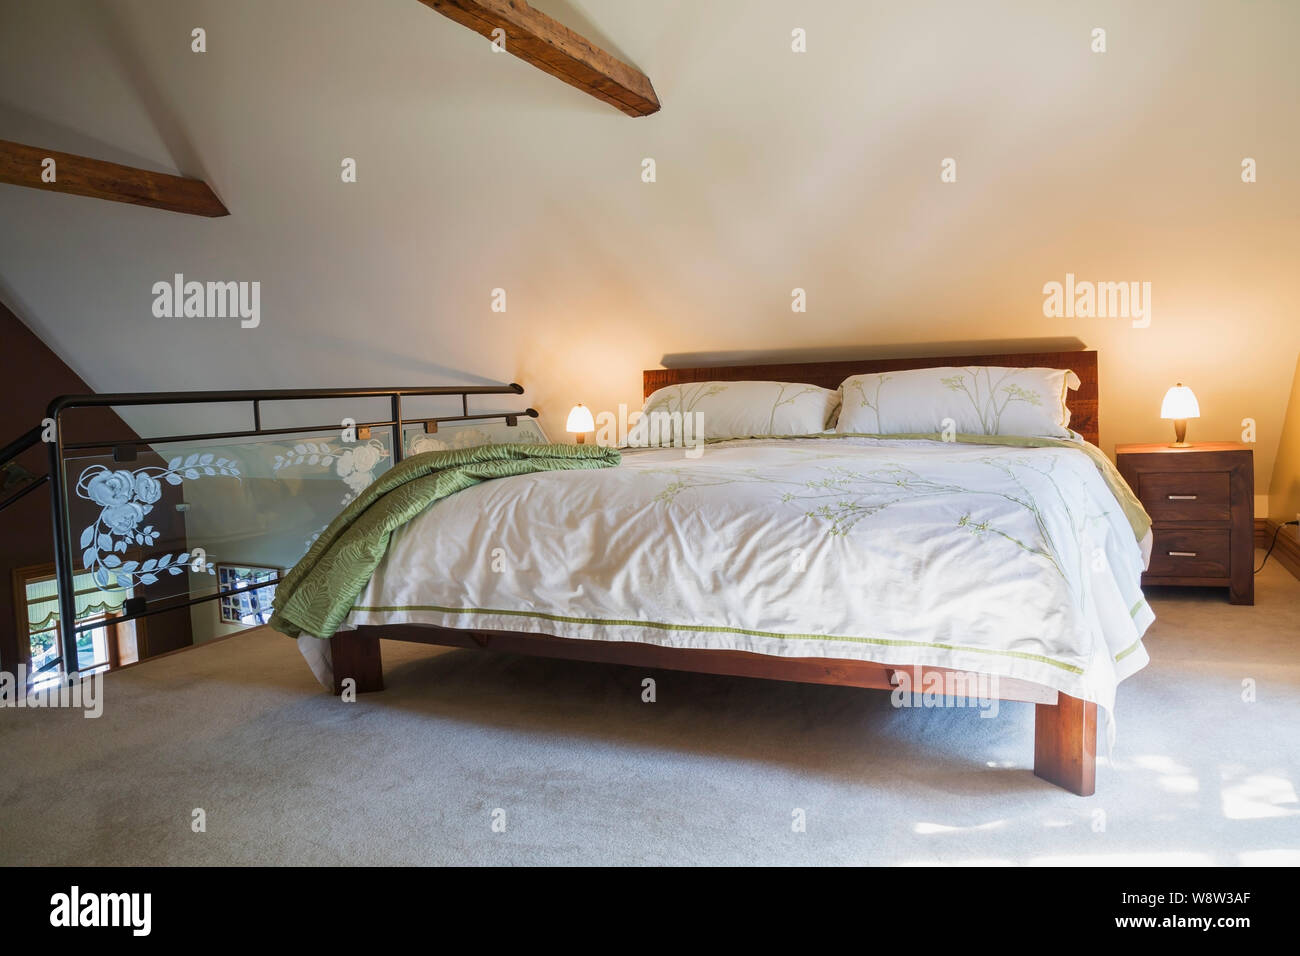 King Size Bed On Teak Wood Frame With End Tables Black Wrought Iron And Tempered Glass Balustrade Old Wooden Structural Beams In Master Bedroom Stock Photo Alamy